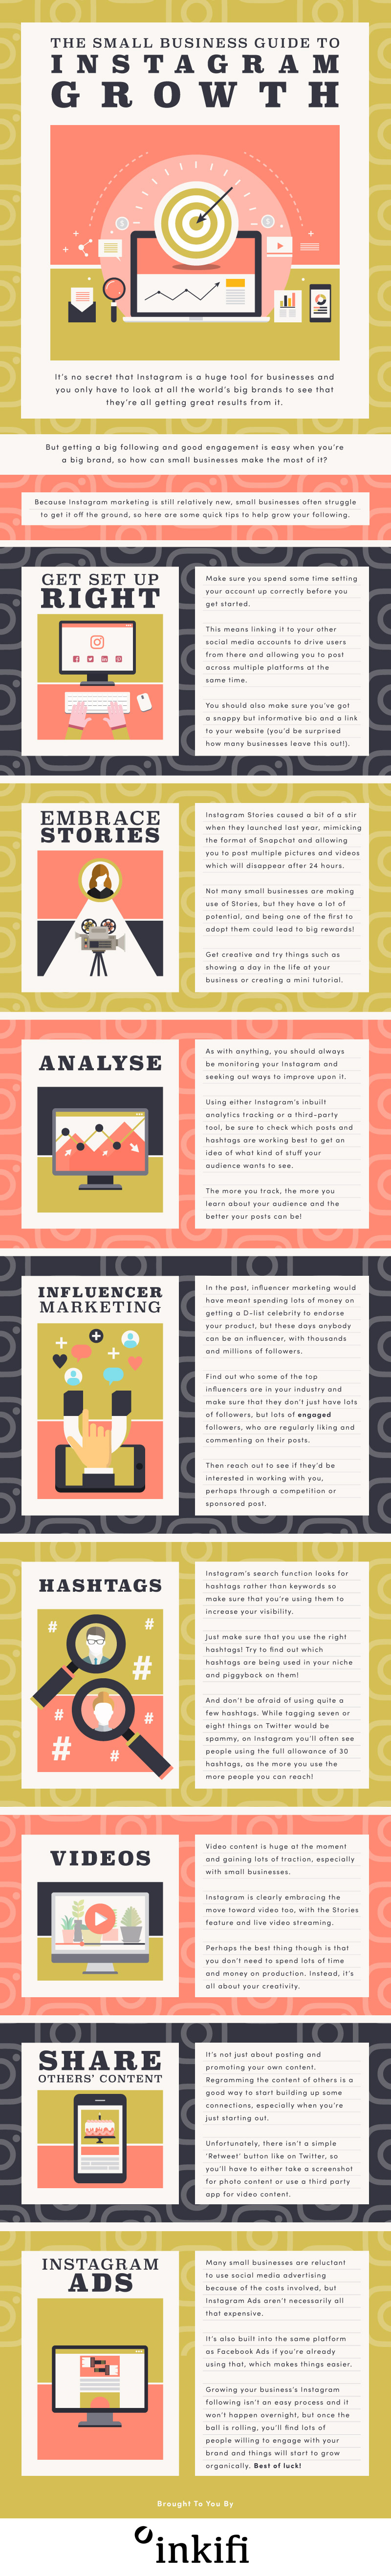 Small Business Guide To Instagram Growth [Infographic]